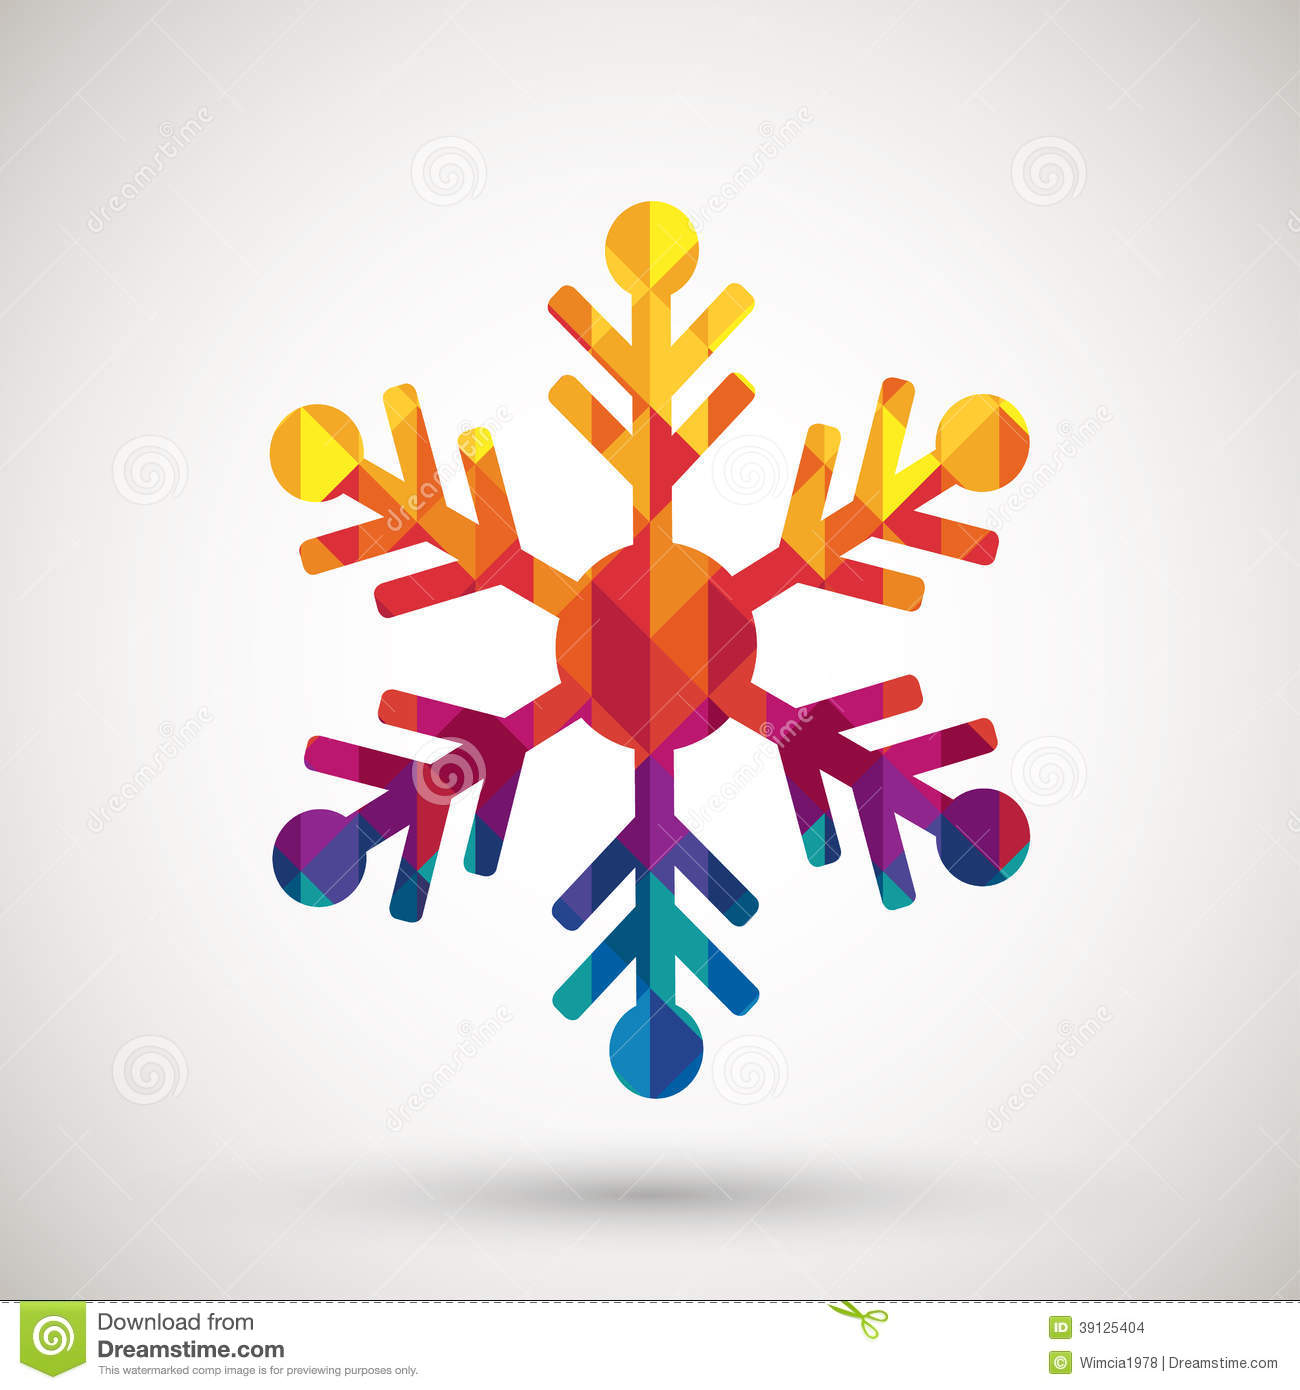 Snowflake Symbol With Colorful Diamond Stock Vector - Image: 39125404